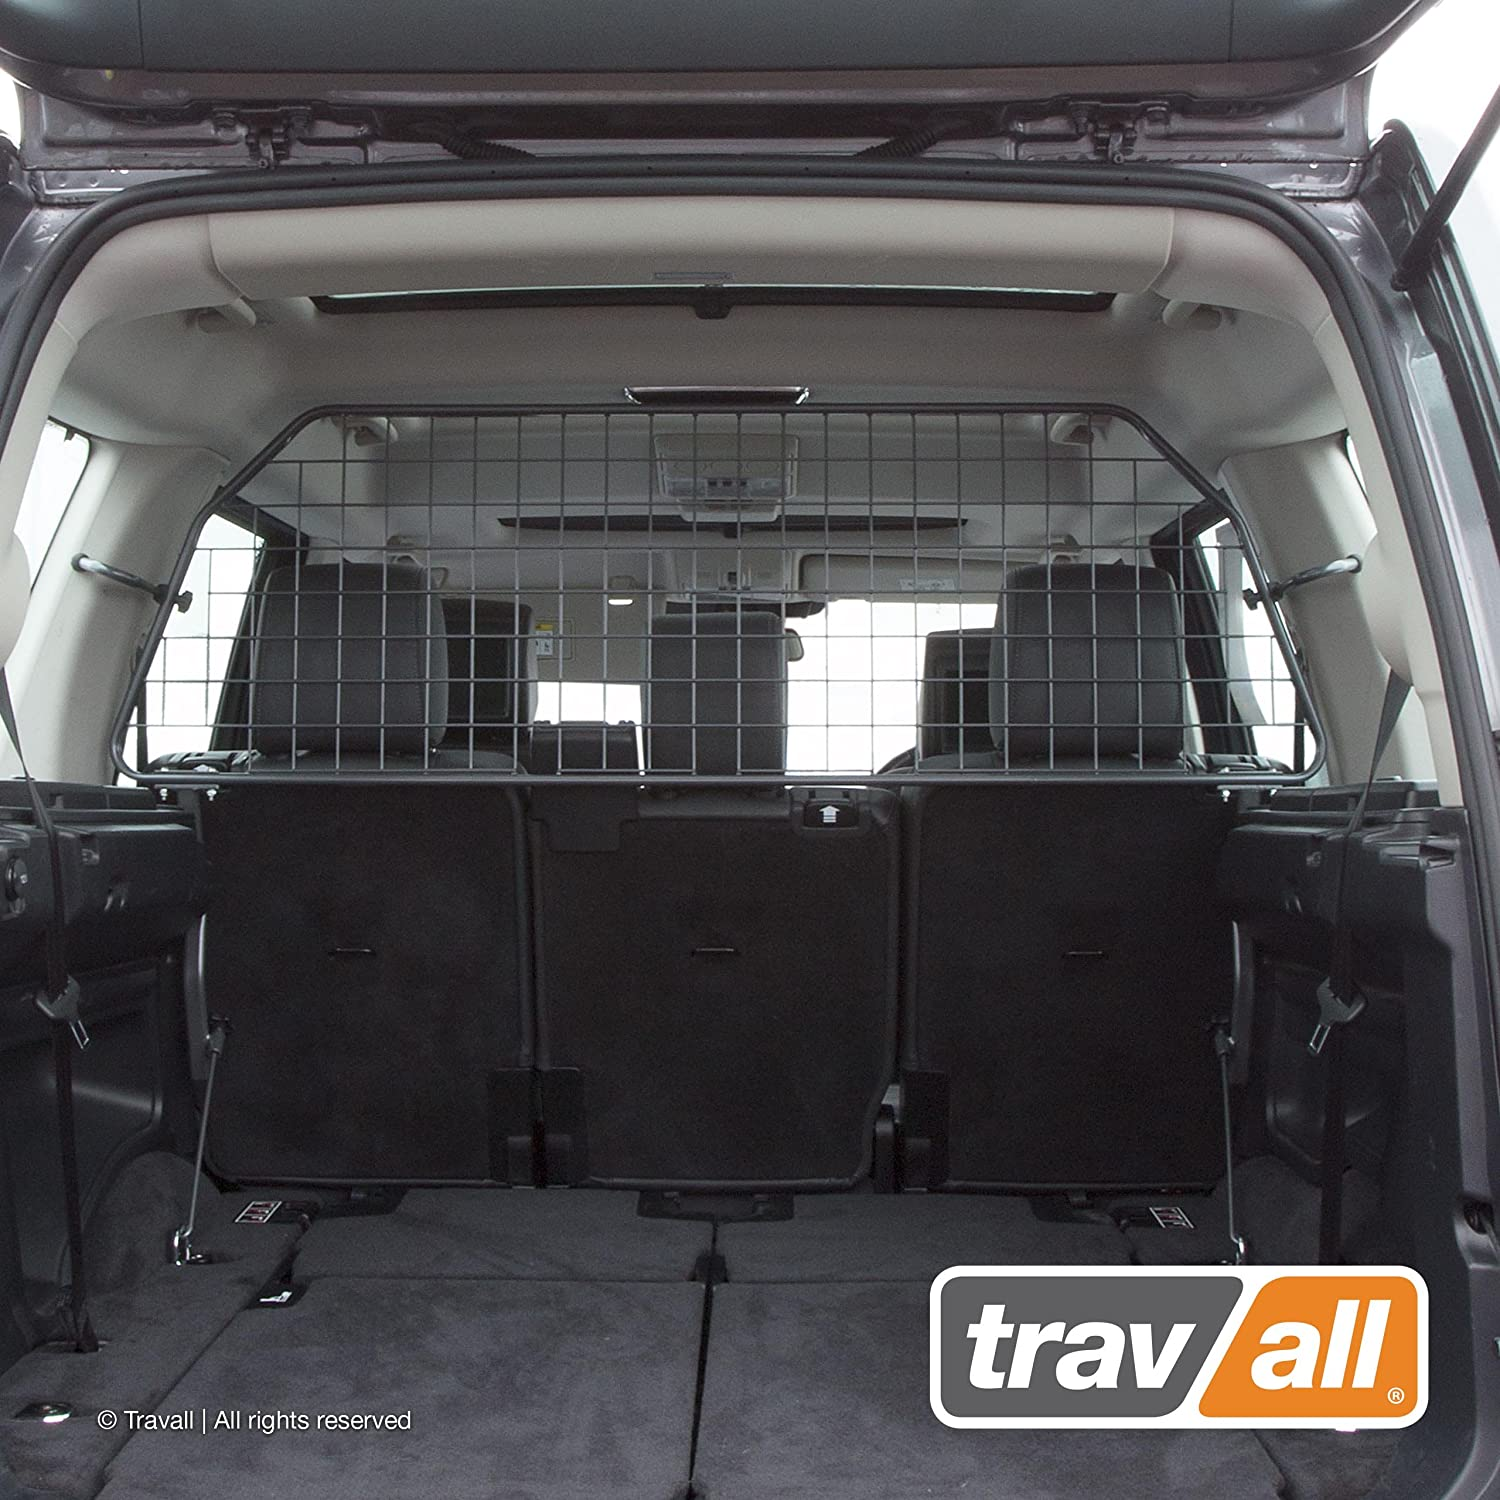 Travall Guard Compatible with Land Rover LR3 Discovery 3 2004-2009 LR4 Discovery 4 2009-2016 TDG1509 – Rattle-Free Steel Pet Barrier